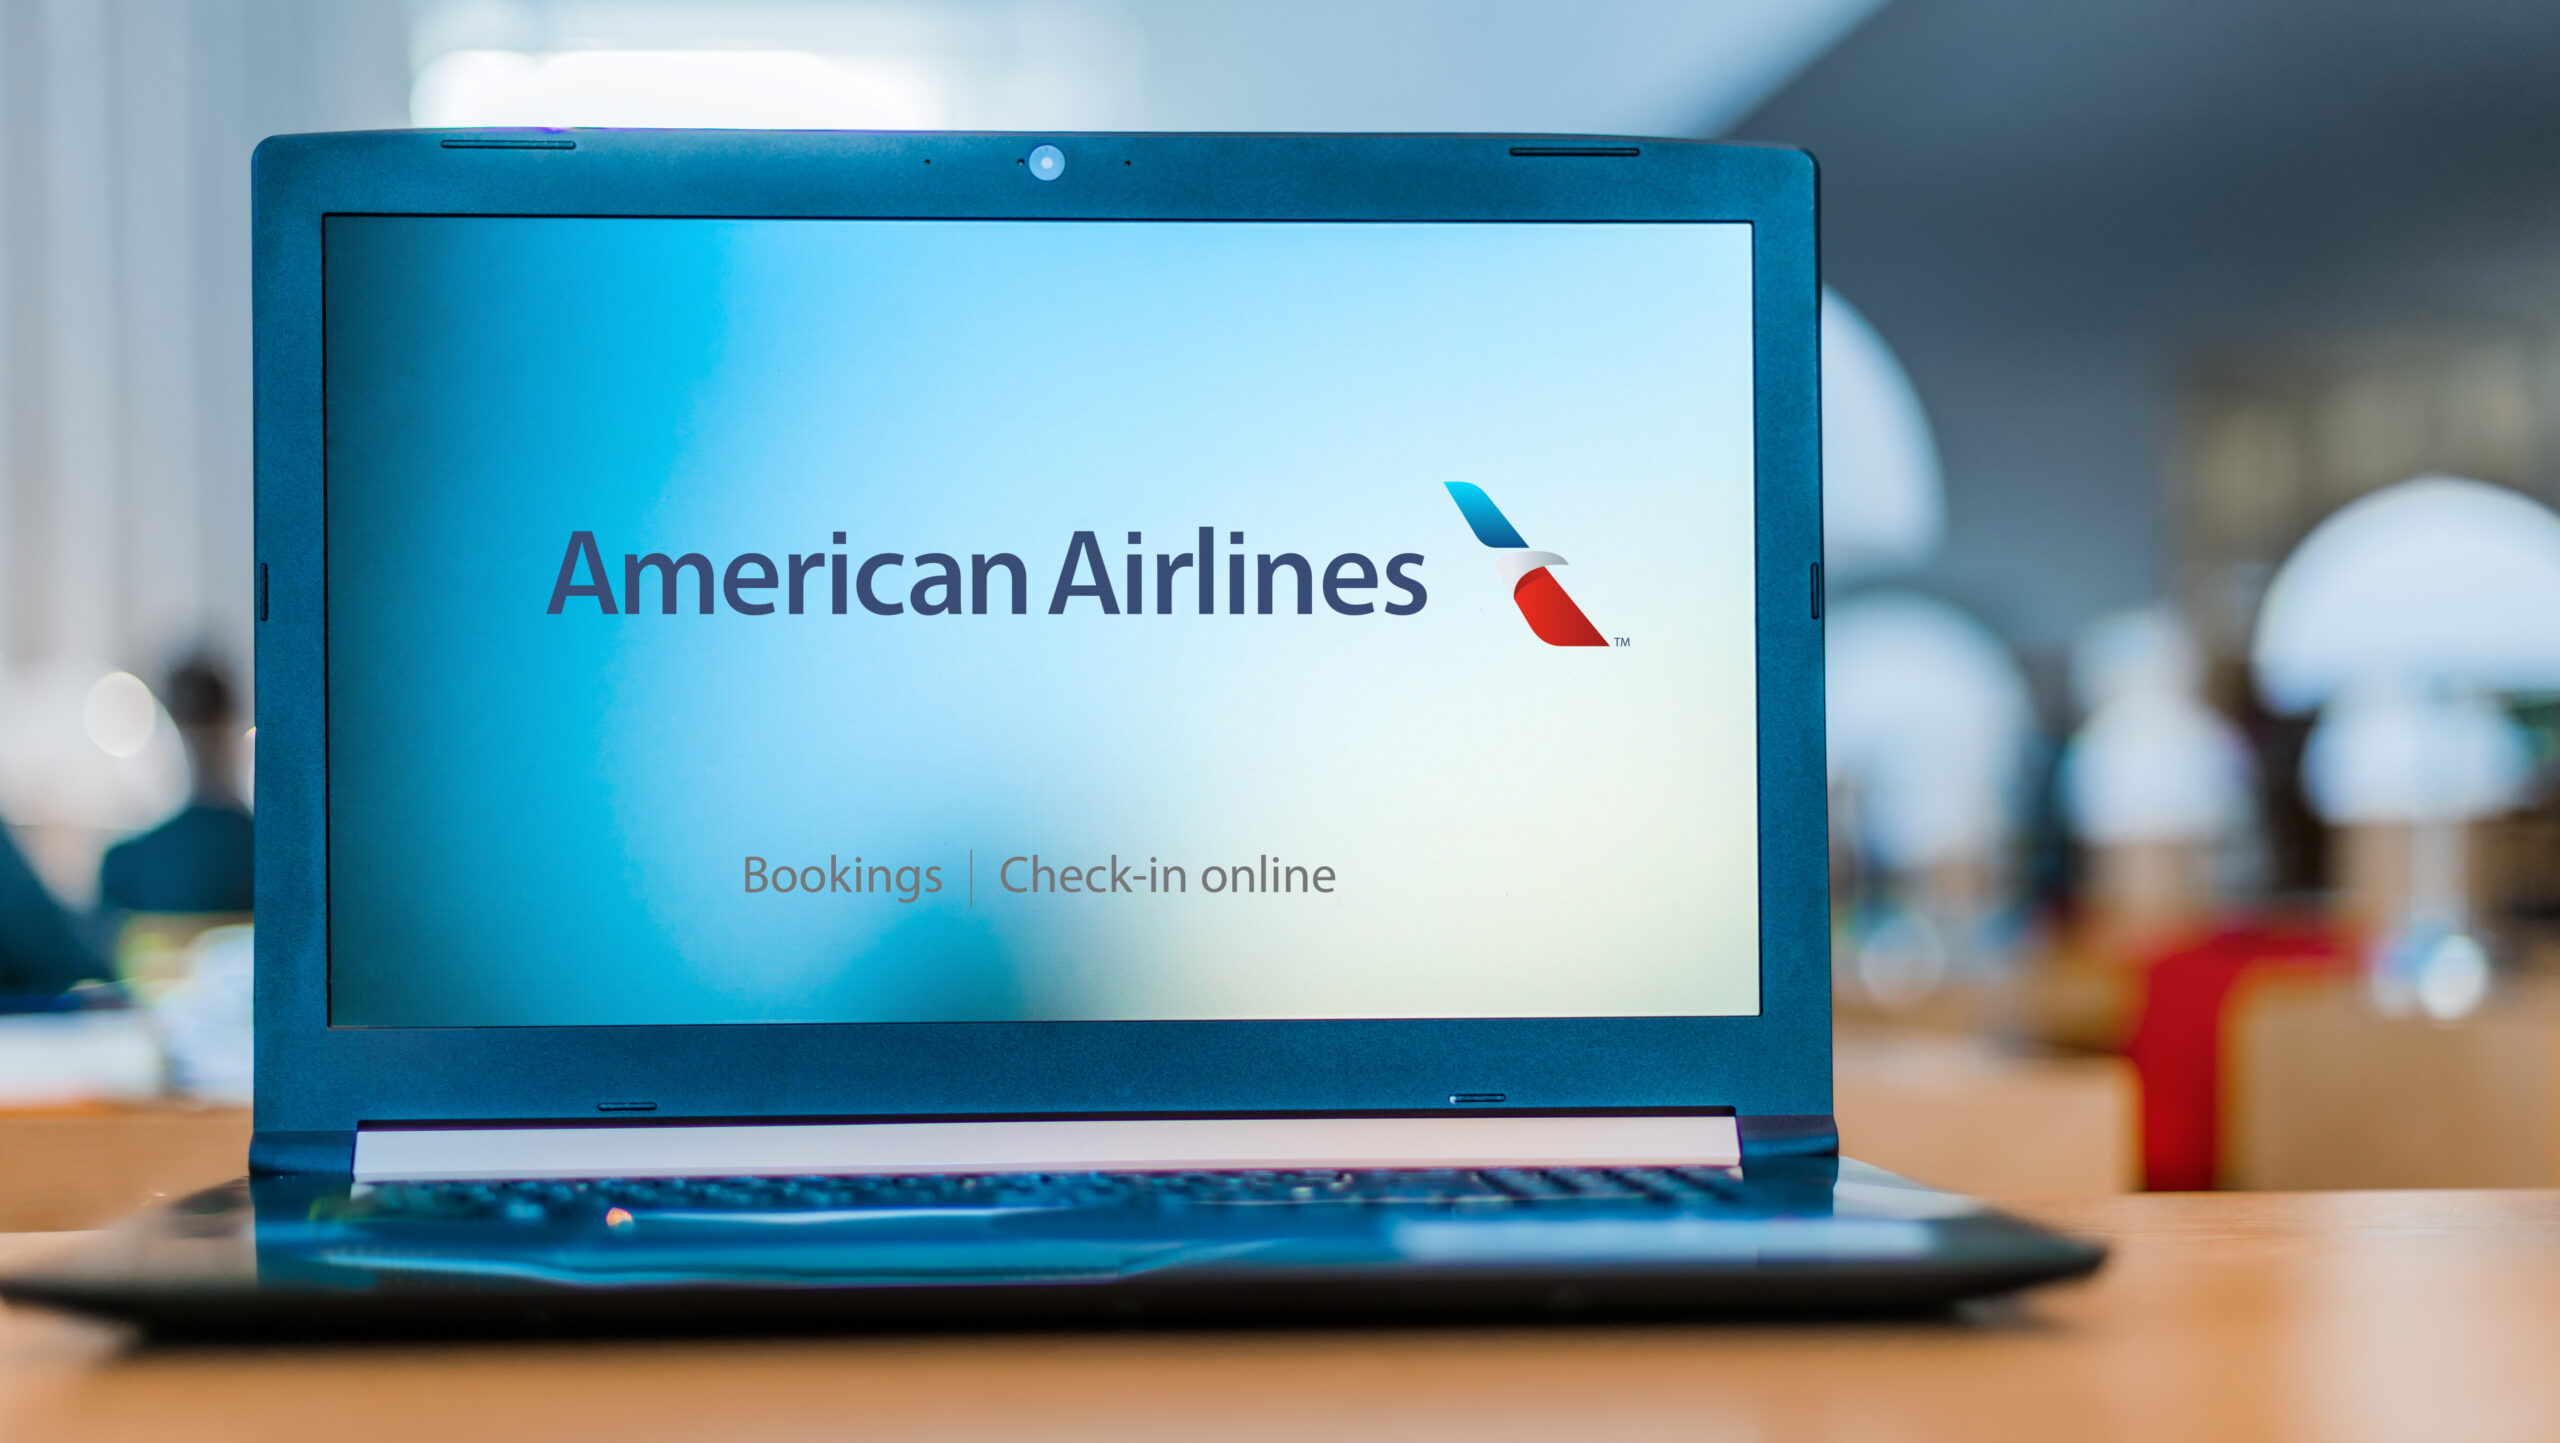 Laptop computer displaying logo of American Airlines